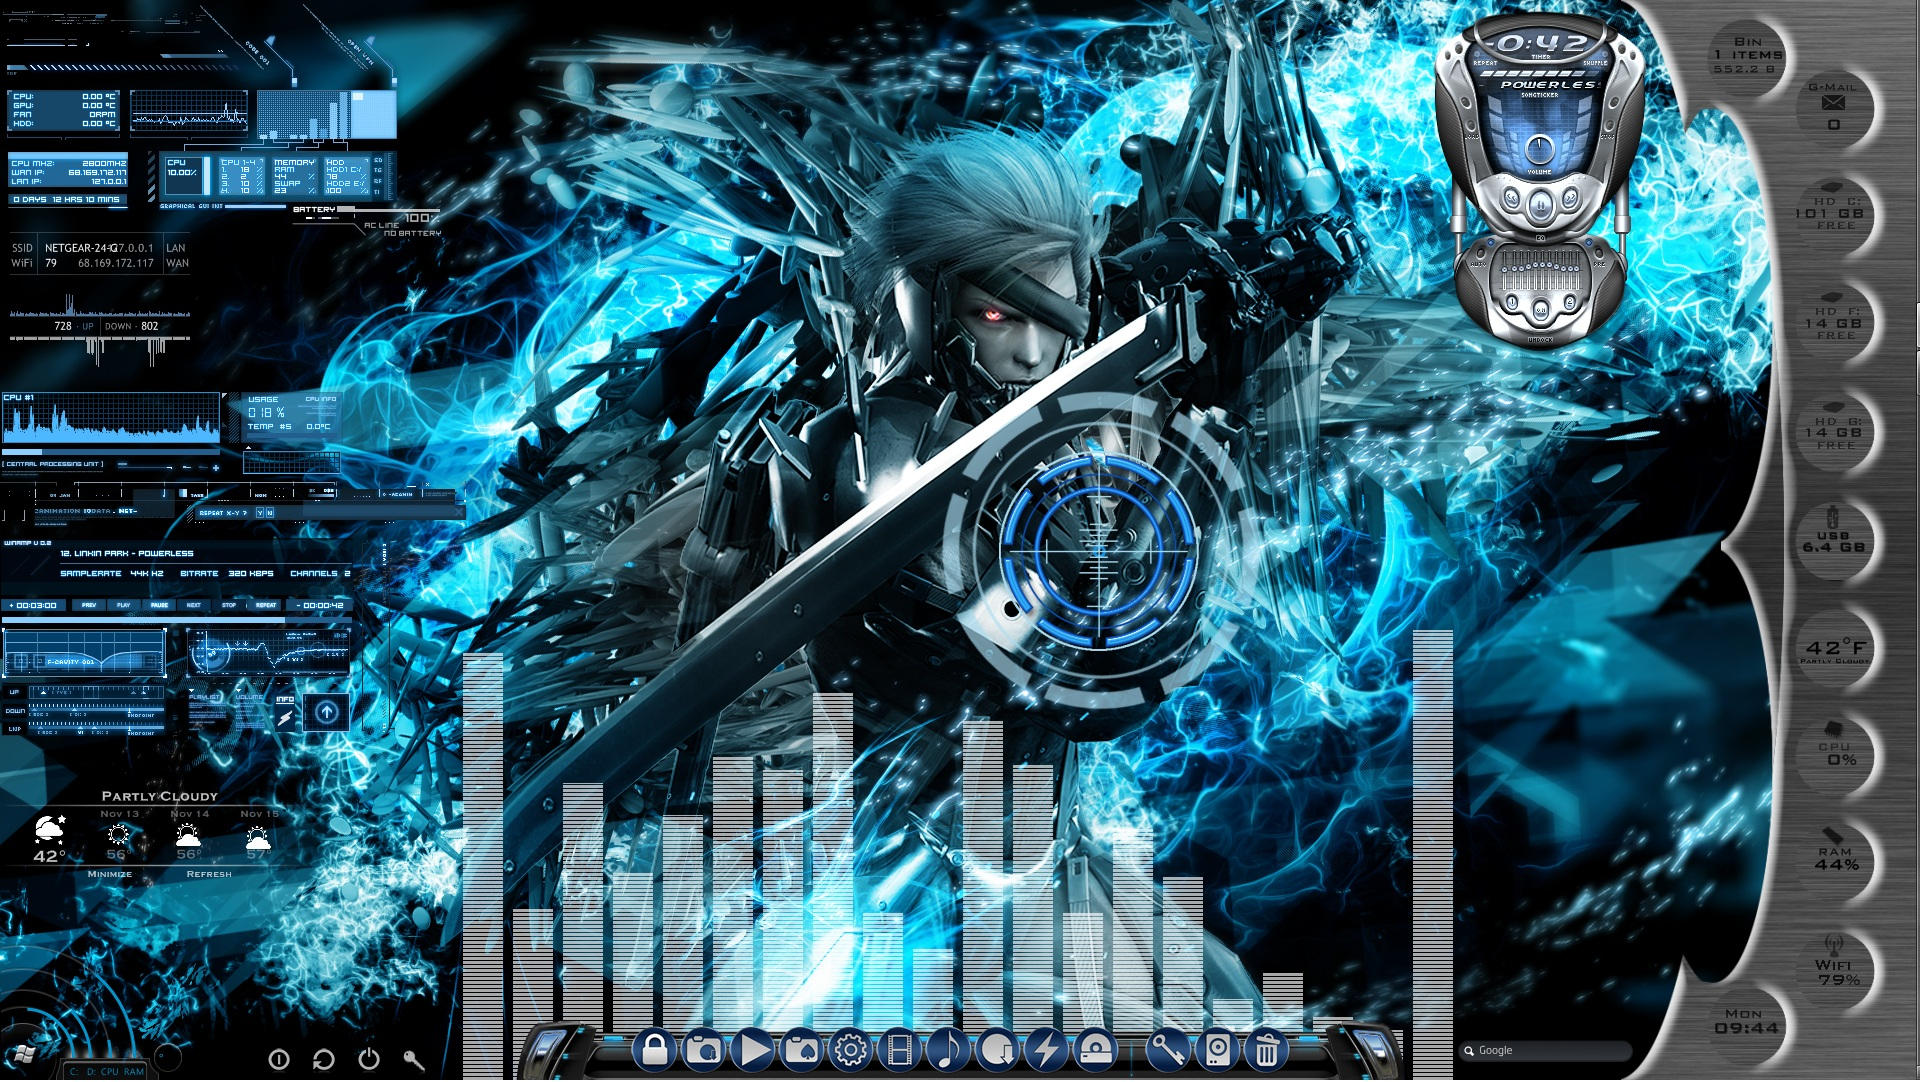 Metal gear rising animated desktop for rainmeter by - Anime moving wallpaper for pc ...